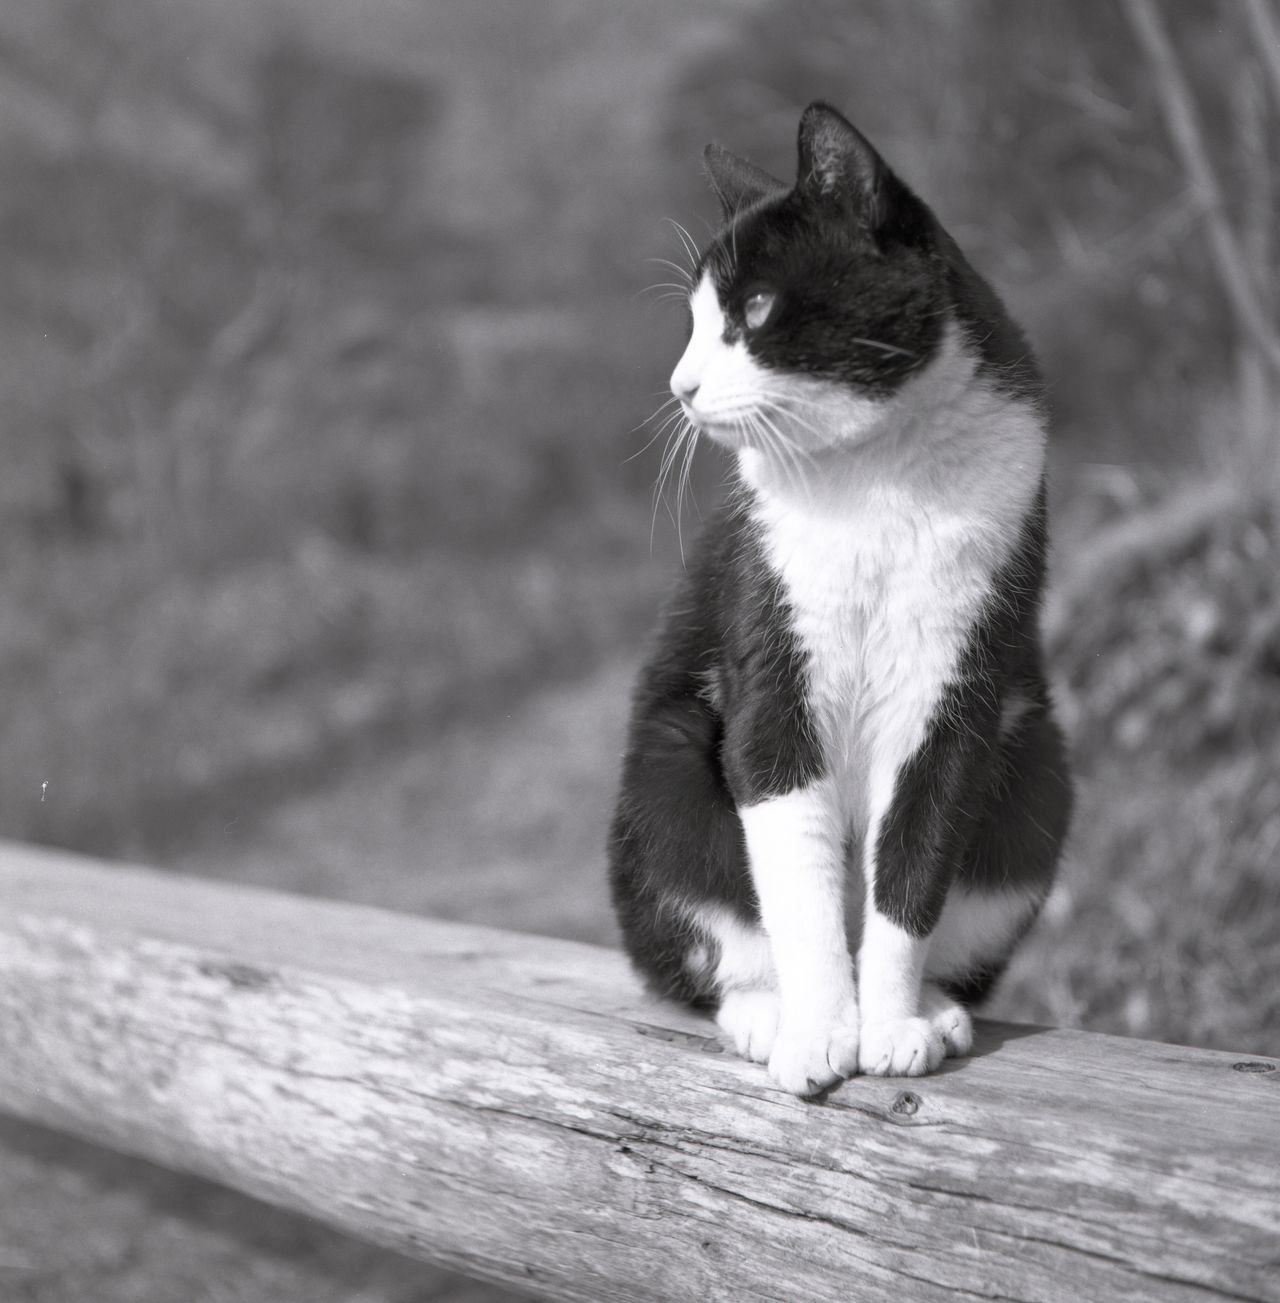 Pets Animal Themes Cat Outdoors Close-up Wild Wildlife Animals In The Wild Animal Animal Wildlife Animal Photography Animal_collection Cats Cats Of EyeEm Film Film Photography Filmisnotdead Filmcamera Fujifilm Blackandwhite Black And White Blackandwhite Photography Black & White Monochrome Nature